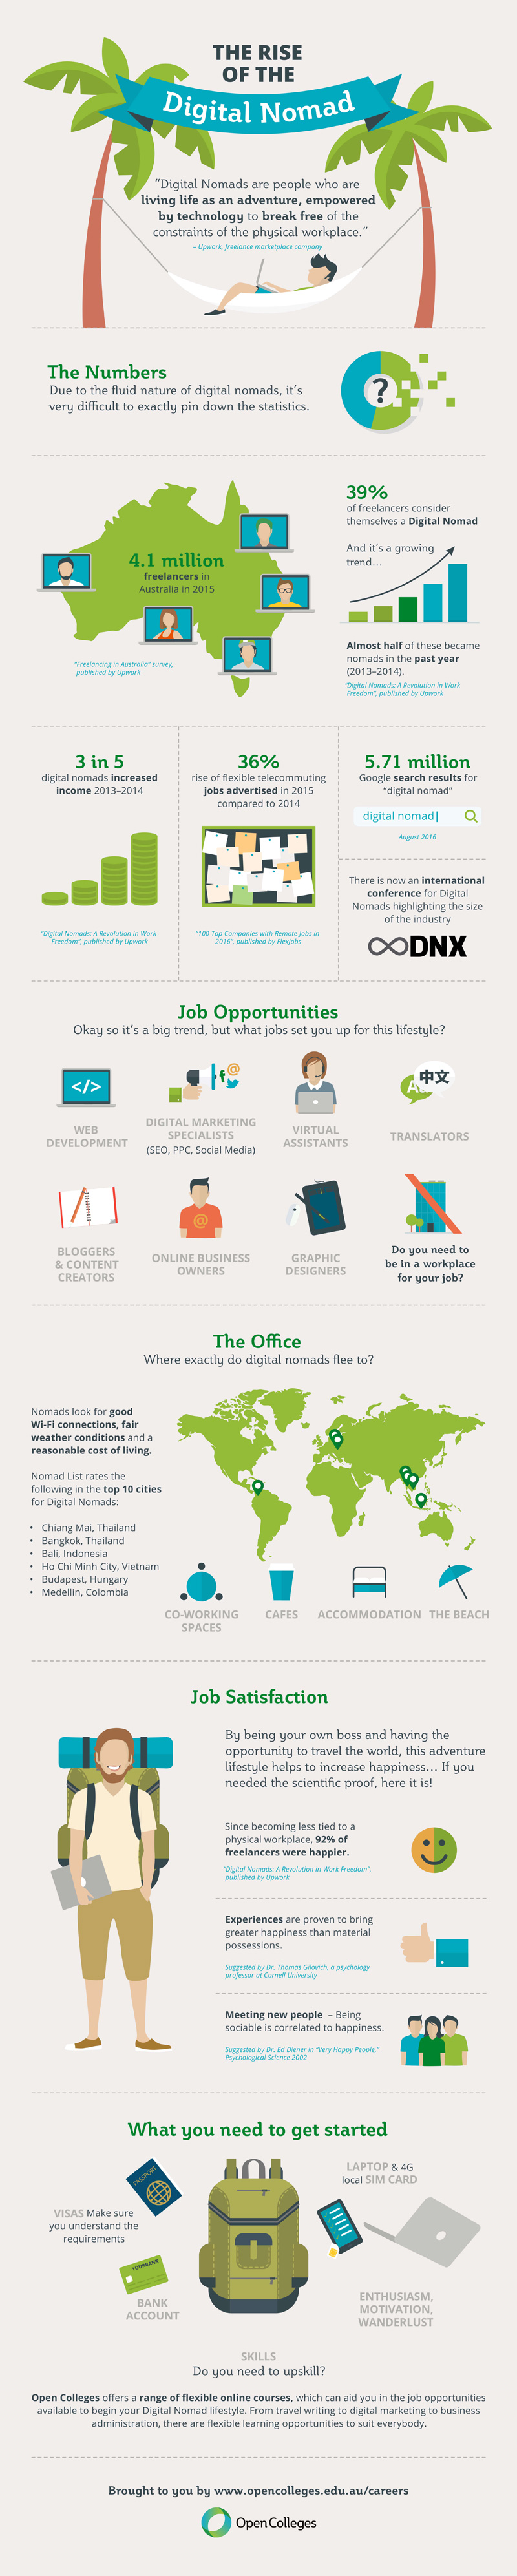 How To Be A Digital Nomad [Infographic]